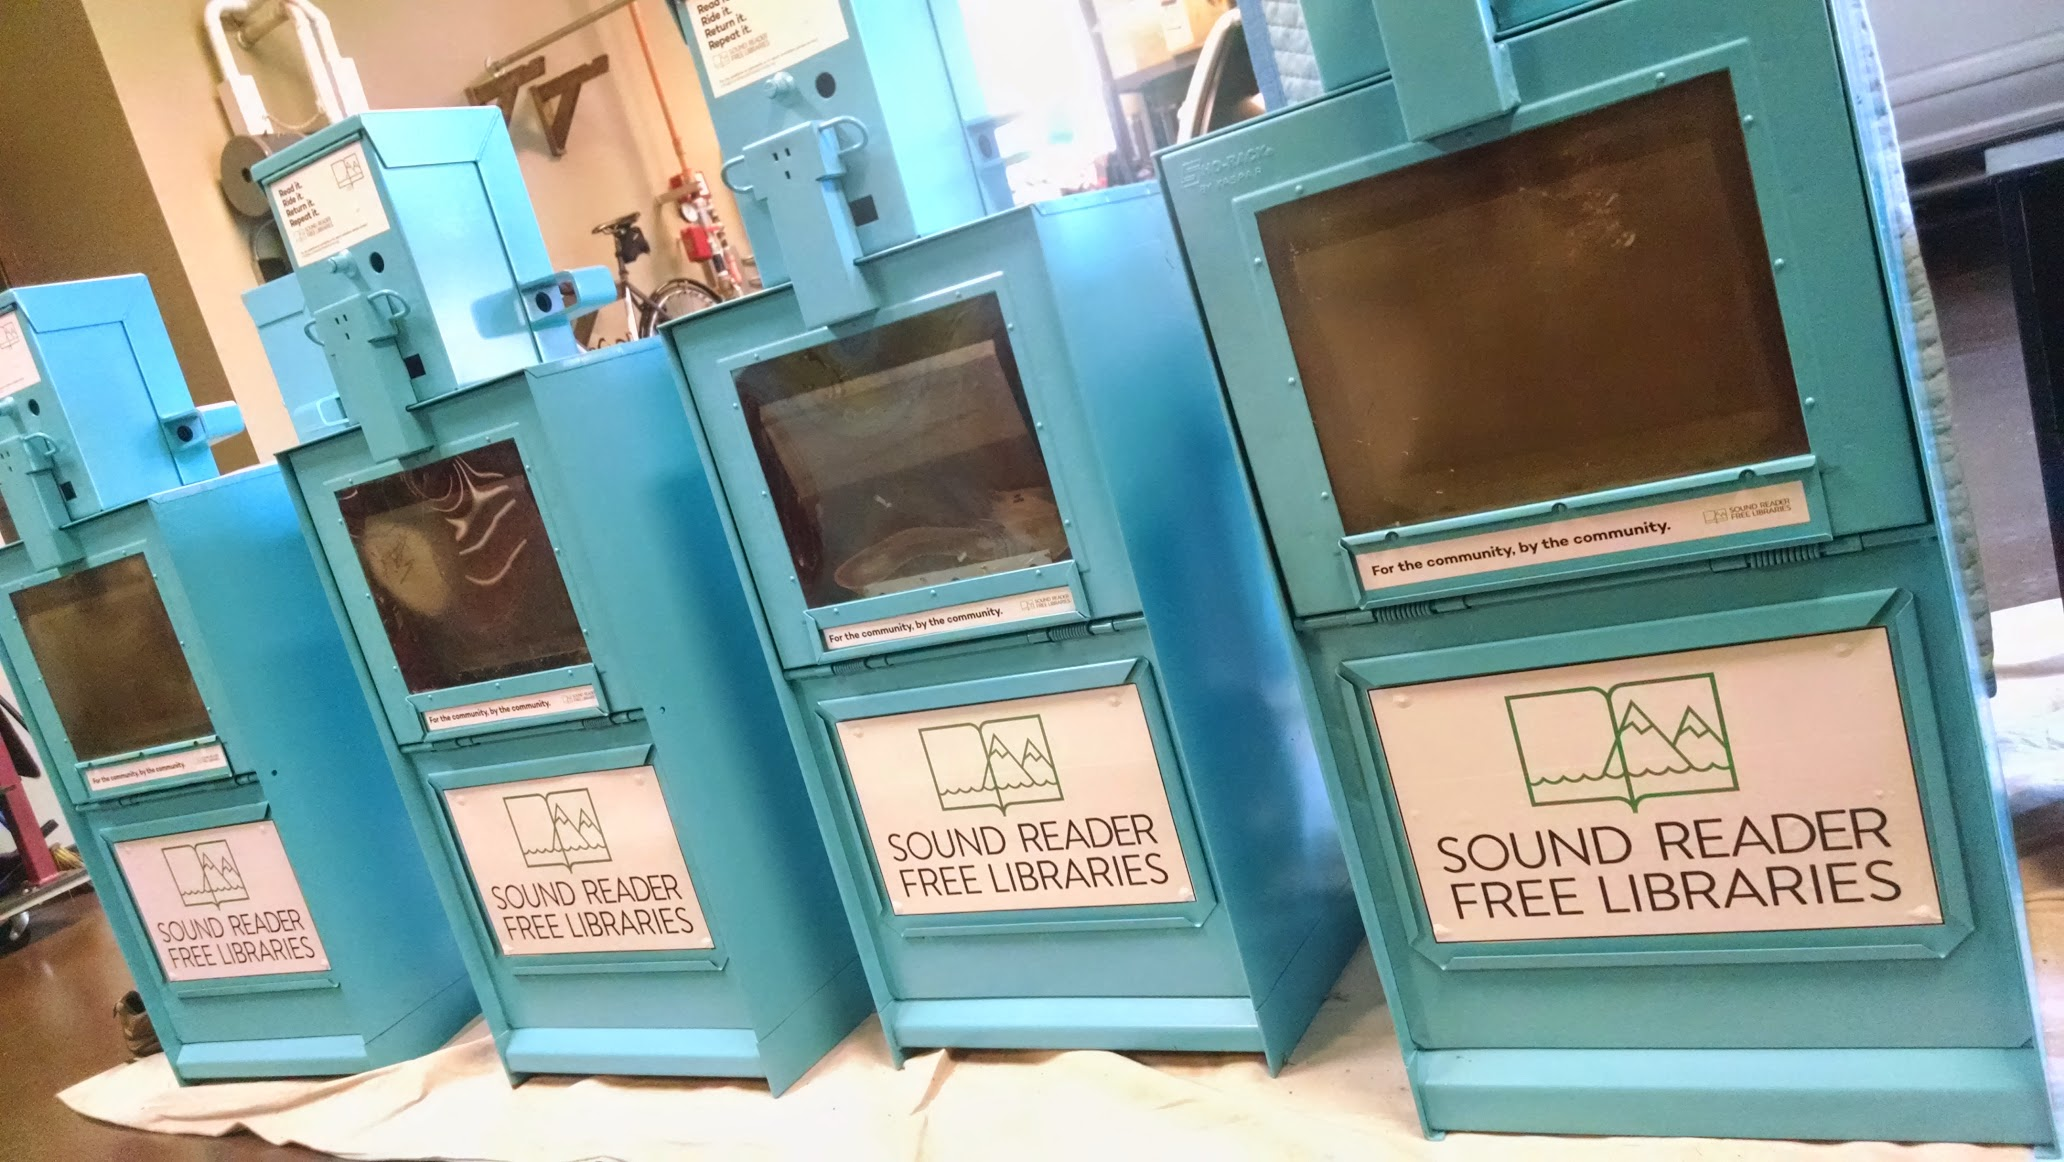 Repurposed and repainted Seattle PI newspaper boxes